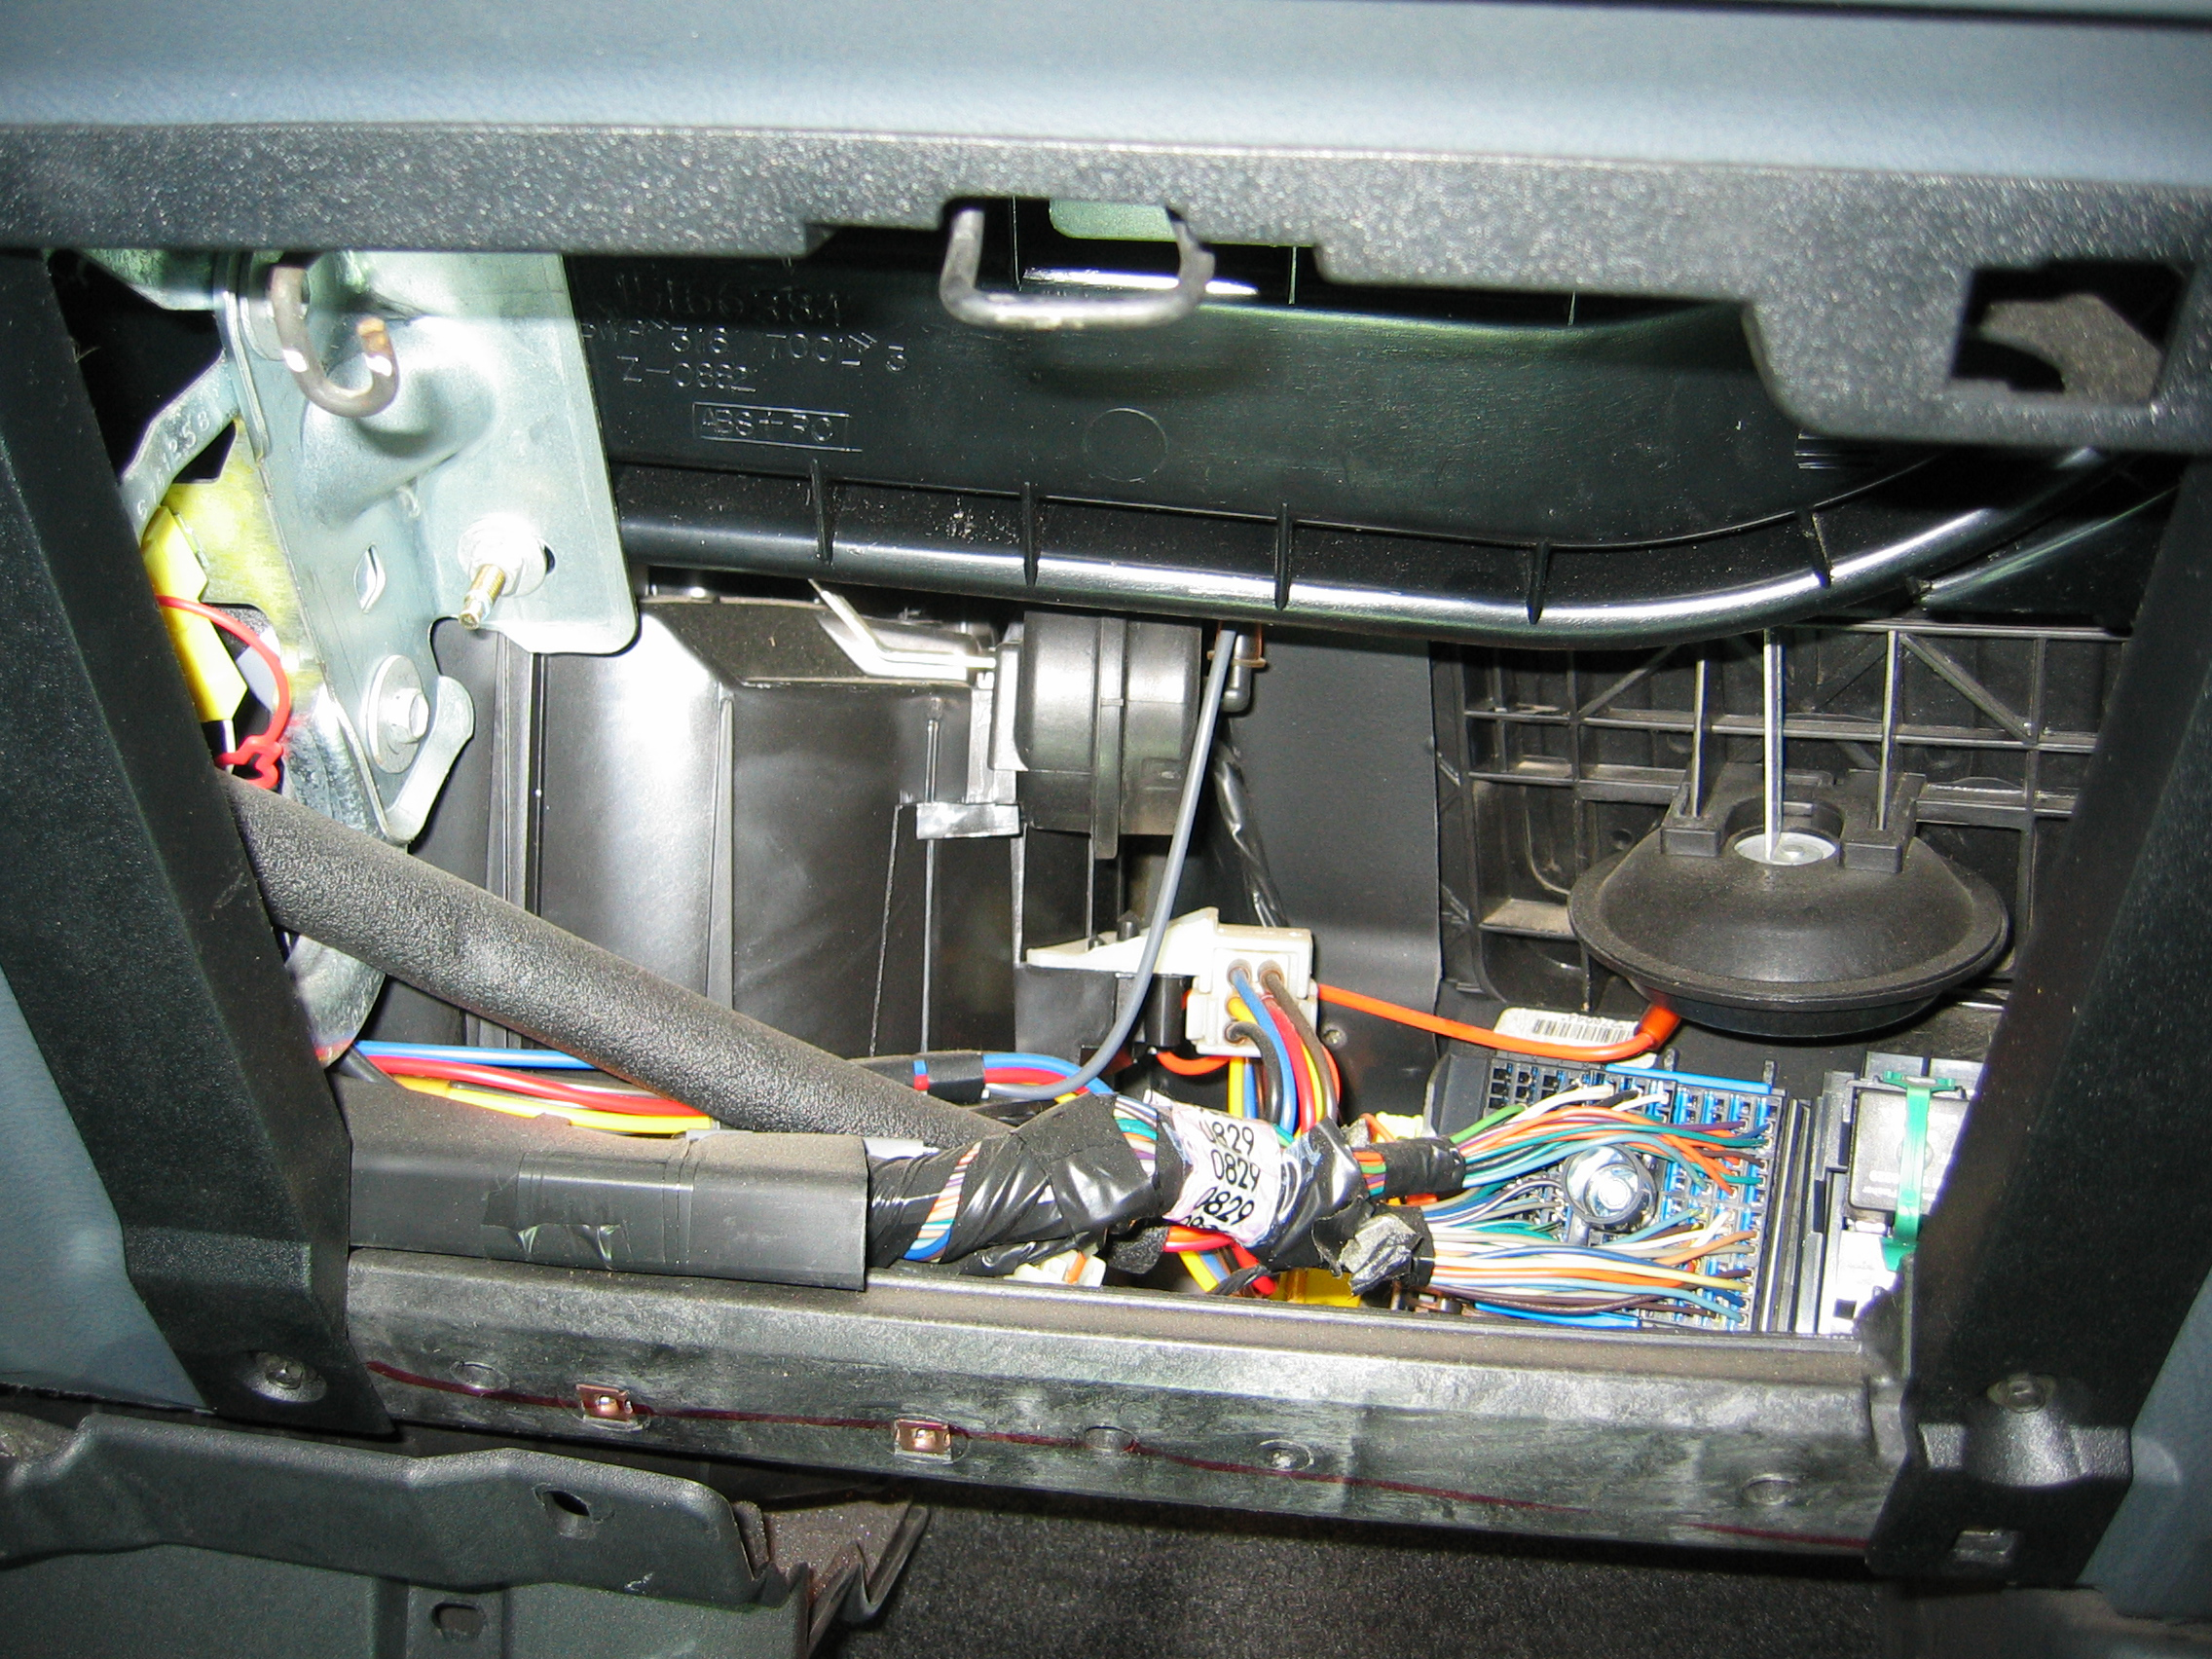 Blazer Hvac Diagram Trusted Wiring 96 S10 Harness 2000 Chevy Heater Typical Commercial System